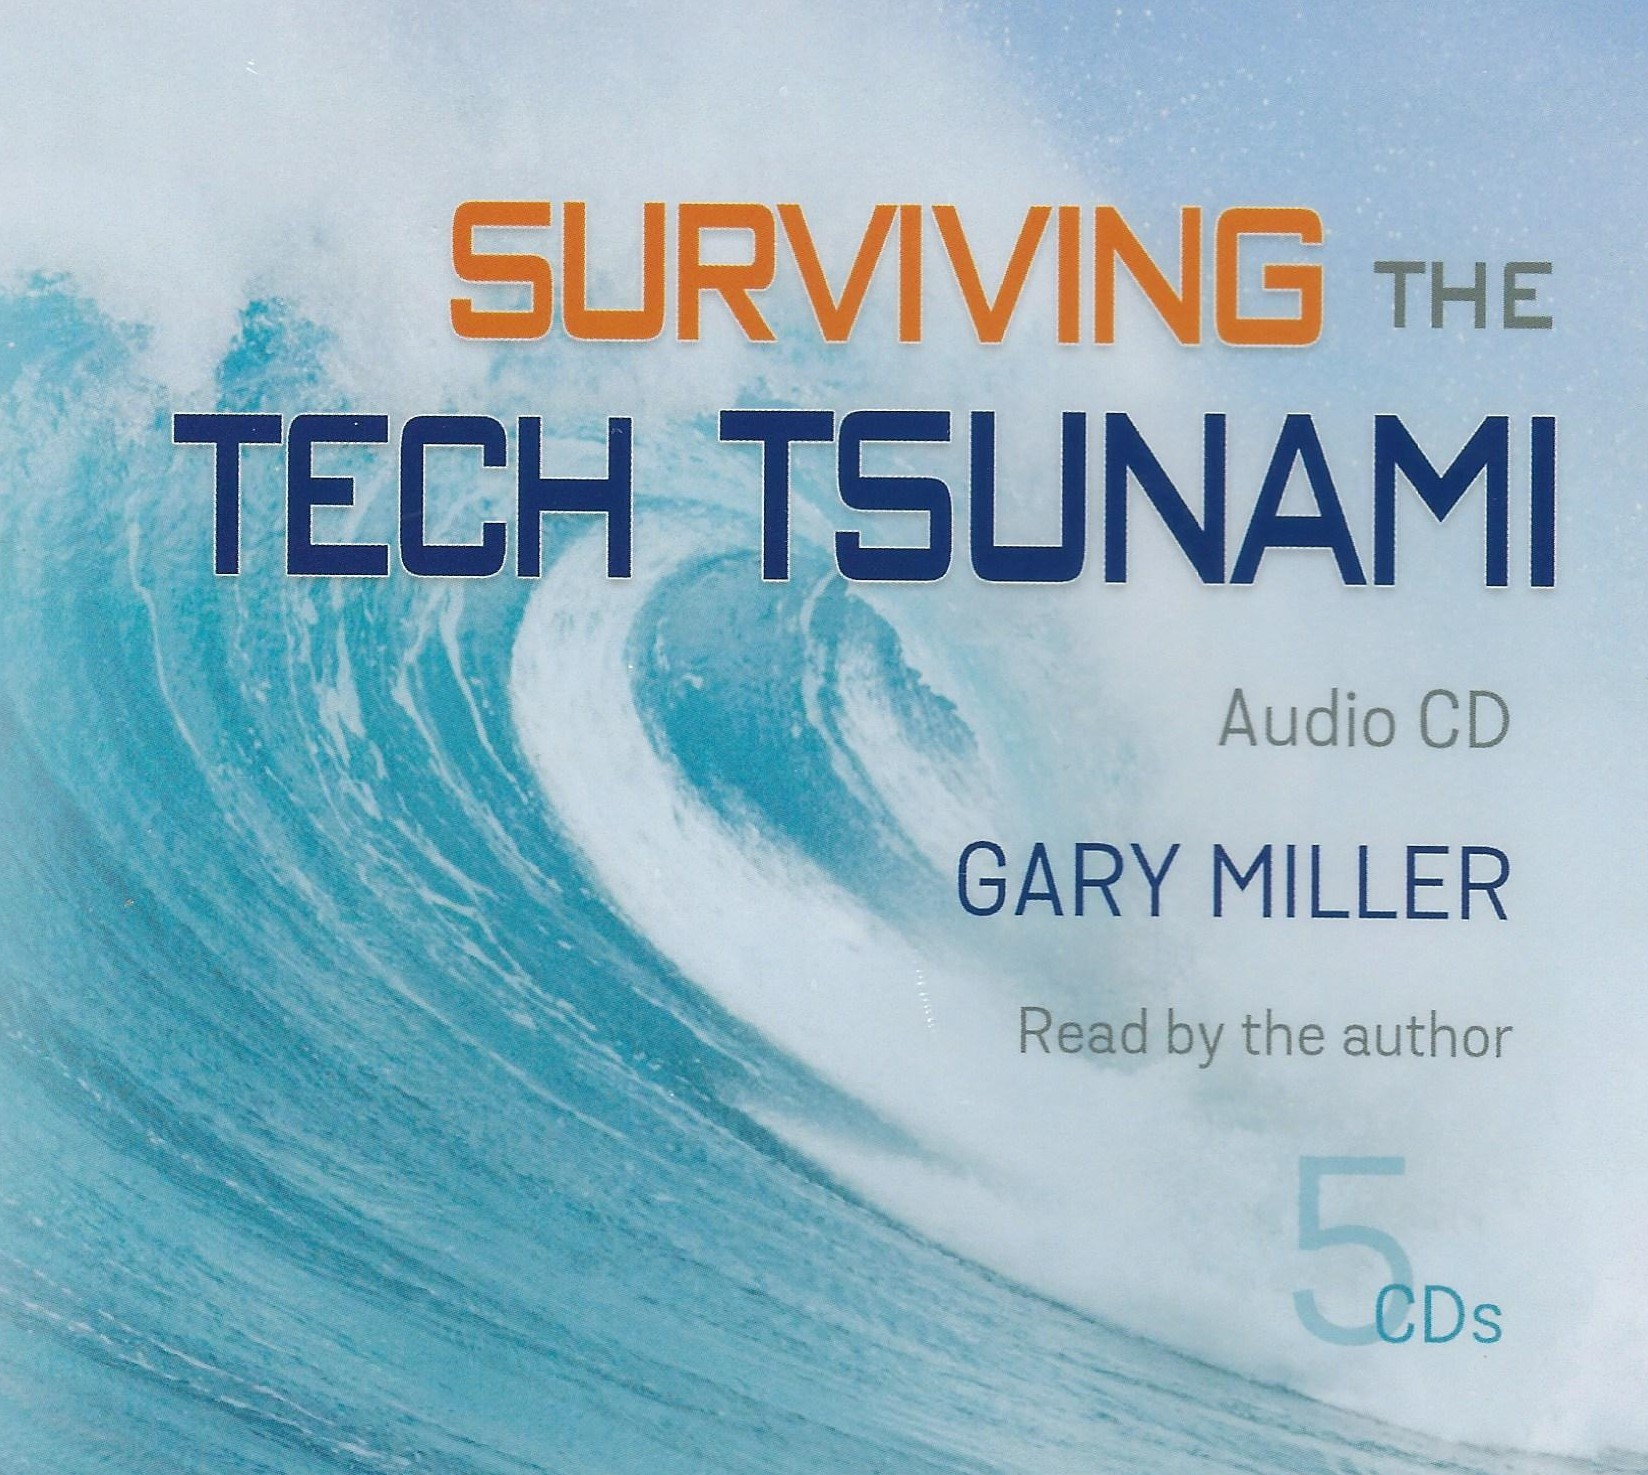 SURVIVING THE TECH TSUNAMI Gary Miller